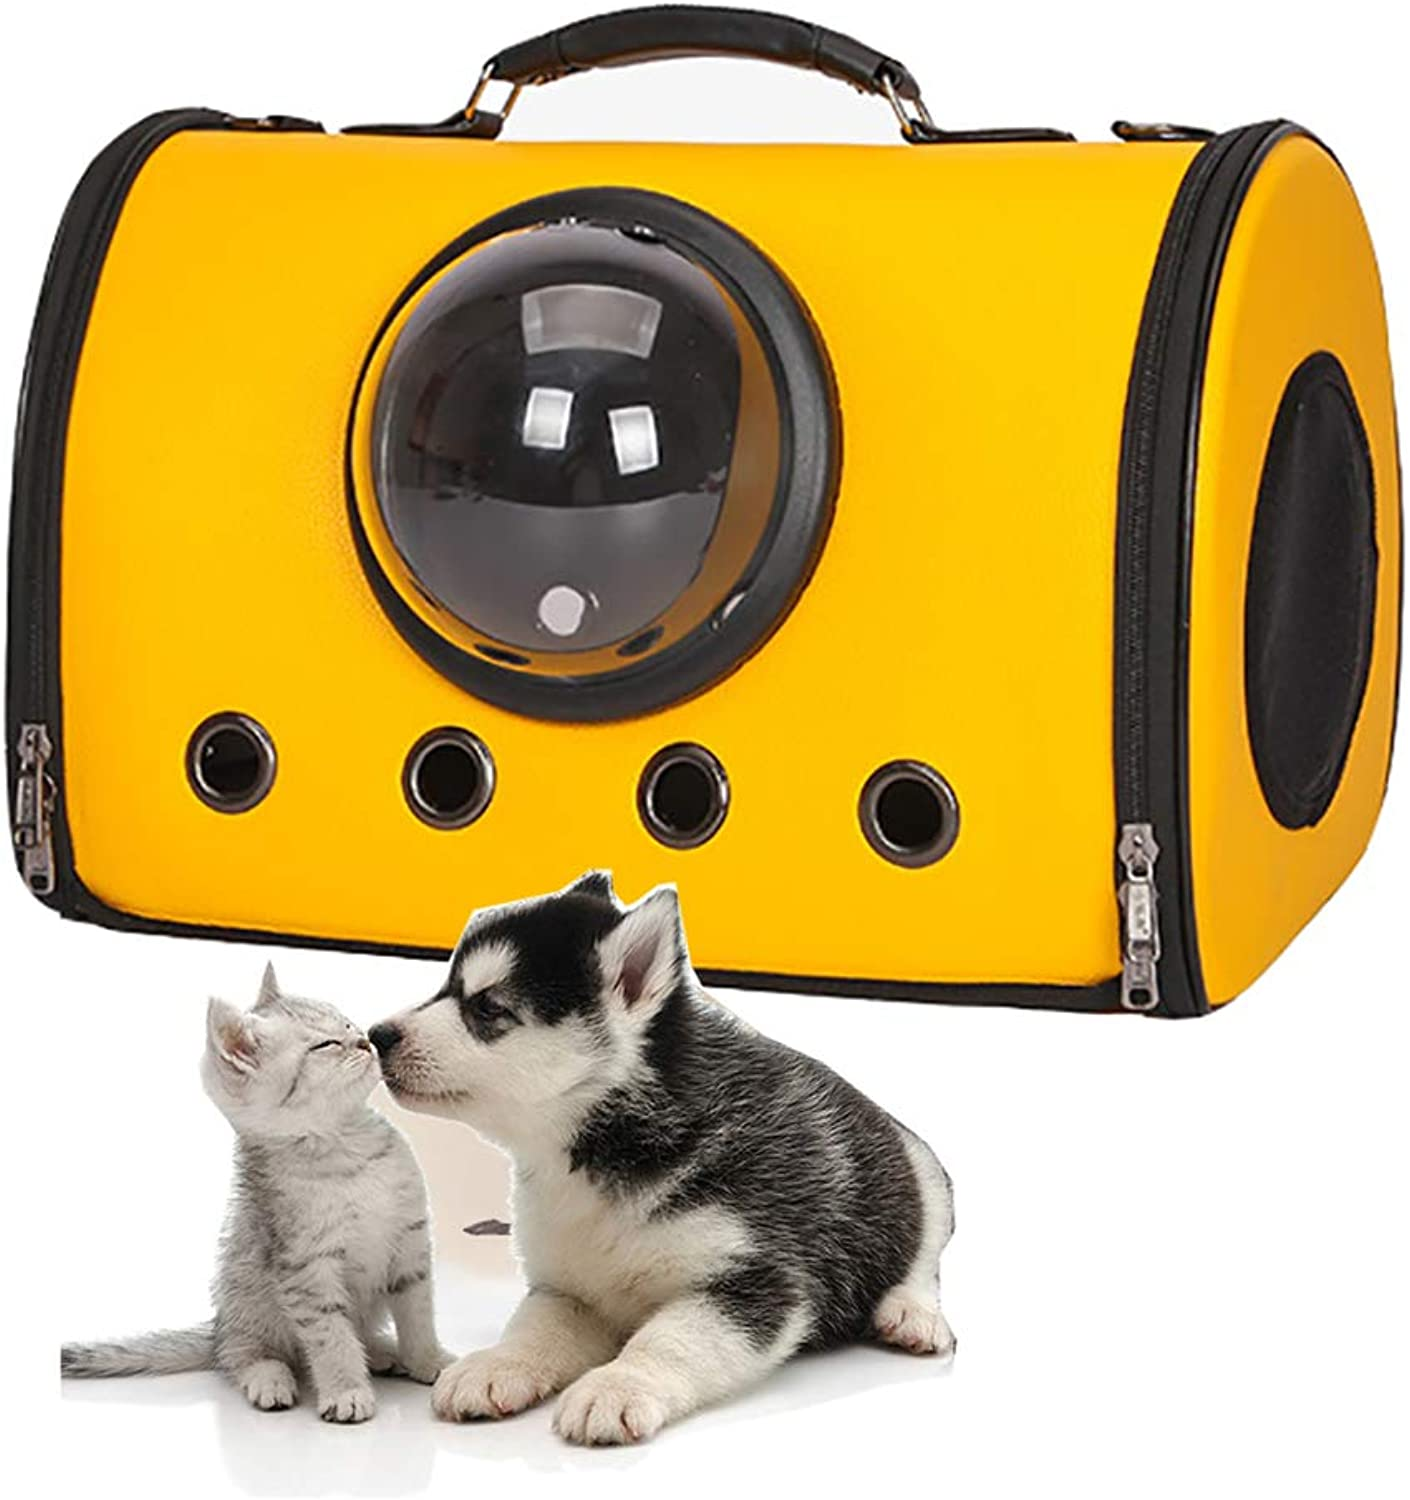 Bubble SoftSide Cat Carrier, Airline Approved pet Purse, Airplane and car Travel Dog Carriers